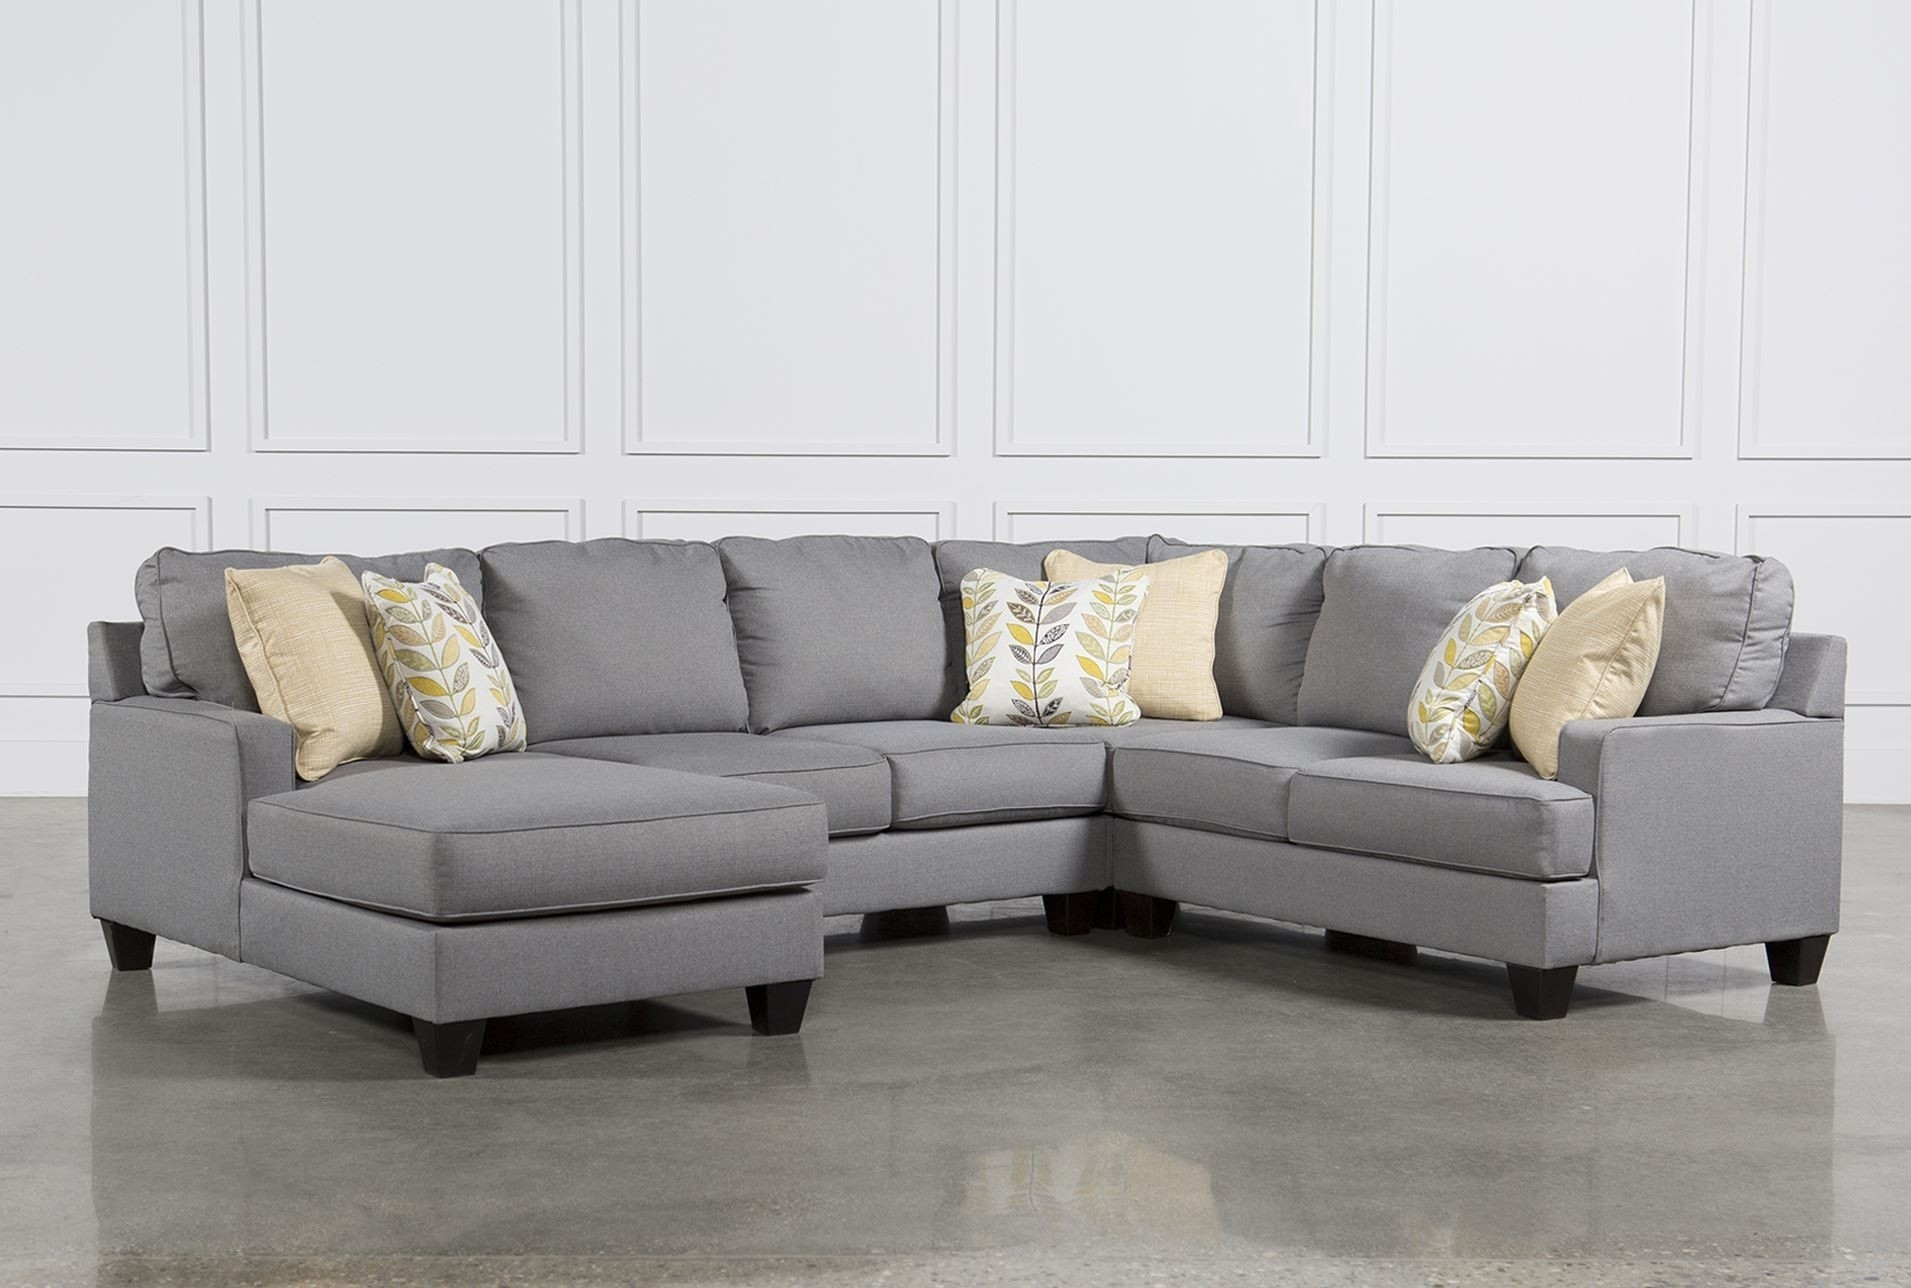 Living Spaces Sectional Sofas – Implantologiabogota (View 24 of 30)